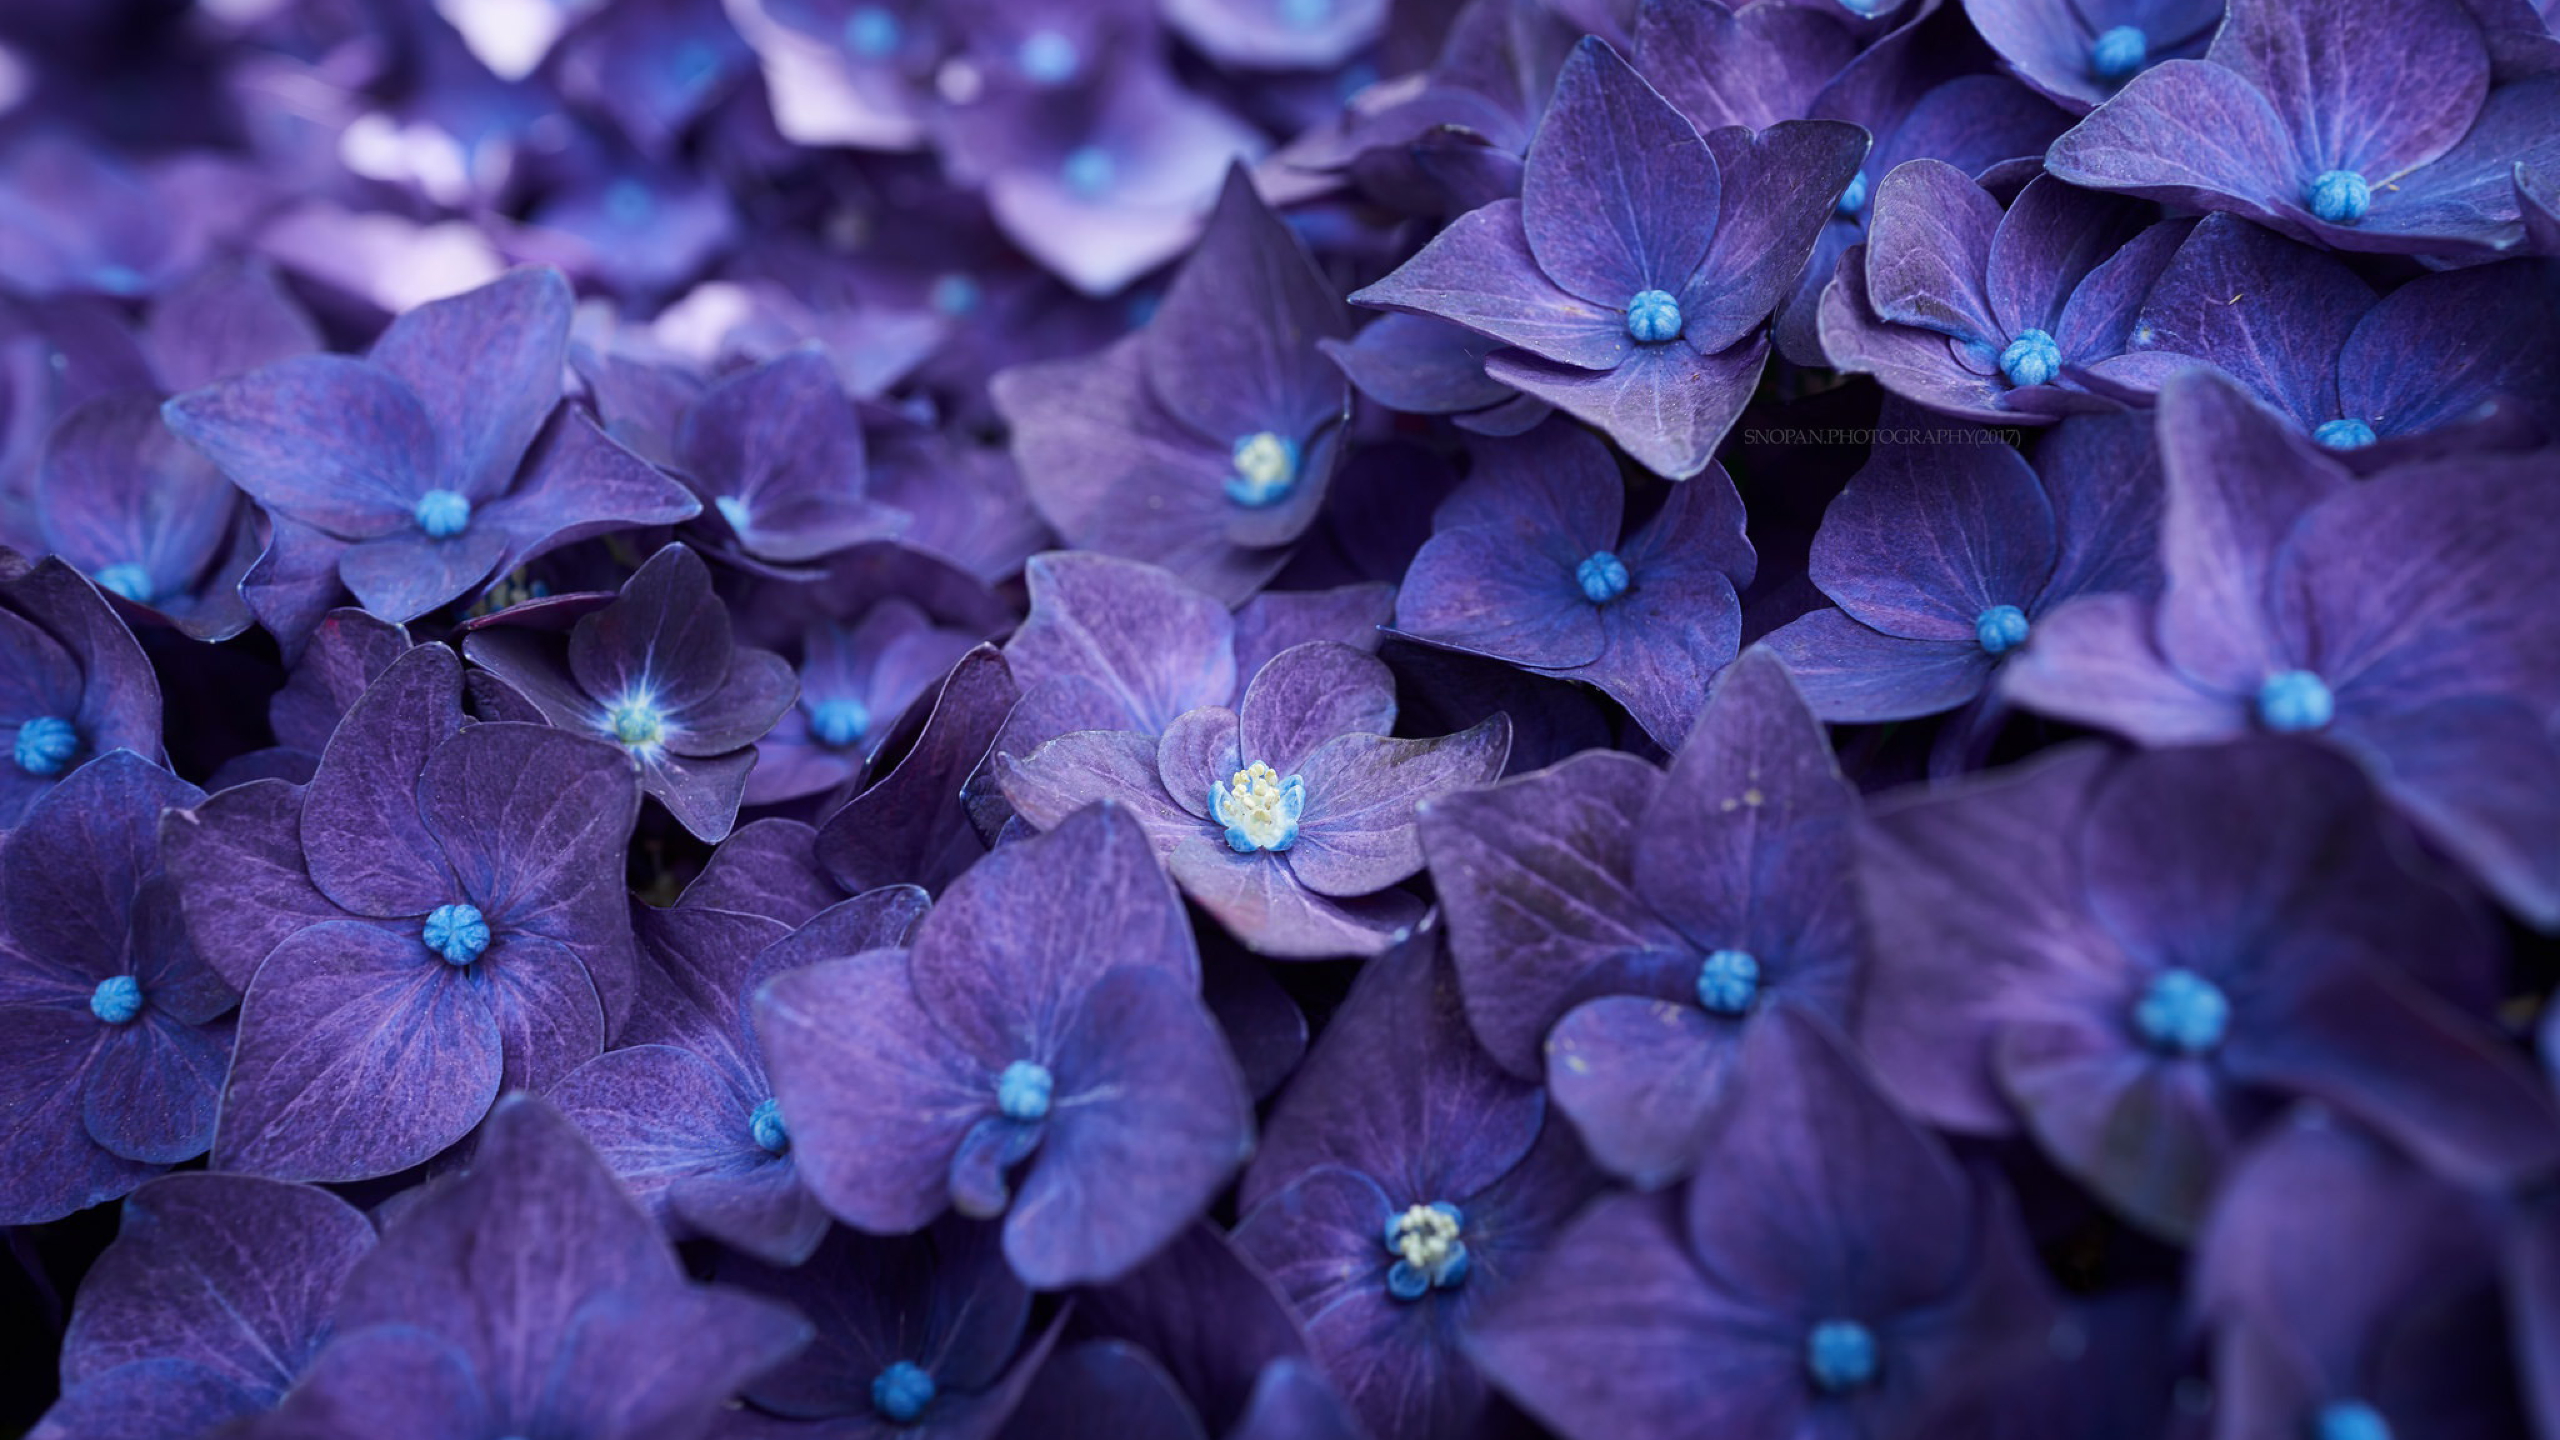 2560x1440 Hydrangea Violet Flowers 1440p Resolution Wallpaper Hd Flowers 4k Wallpapers Images Photos And Background